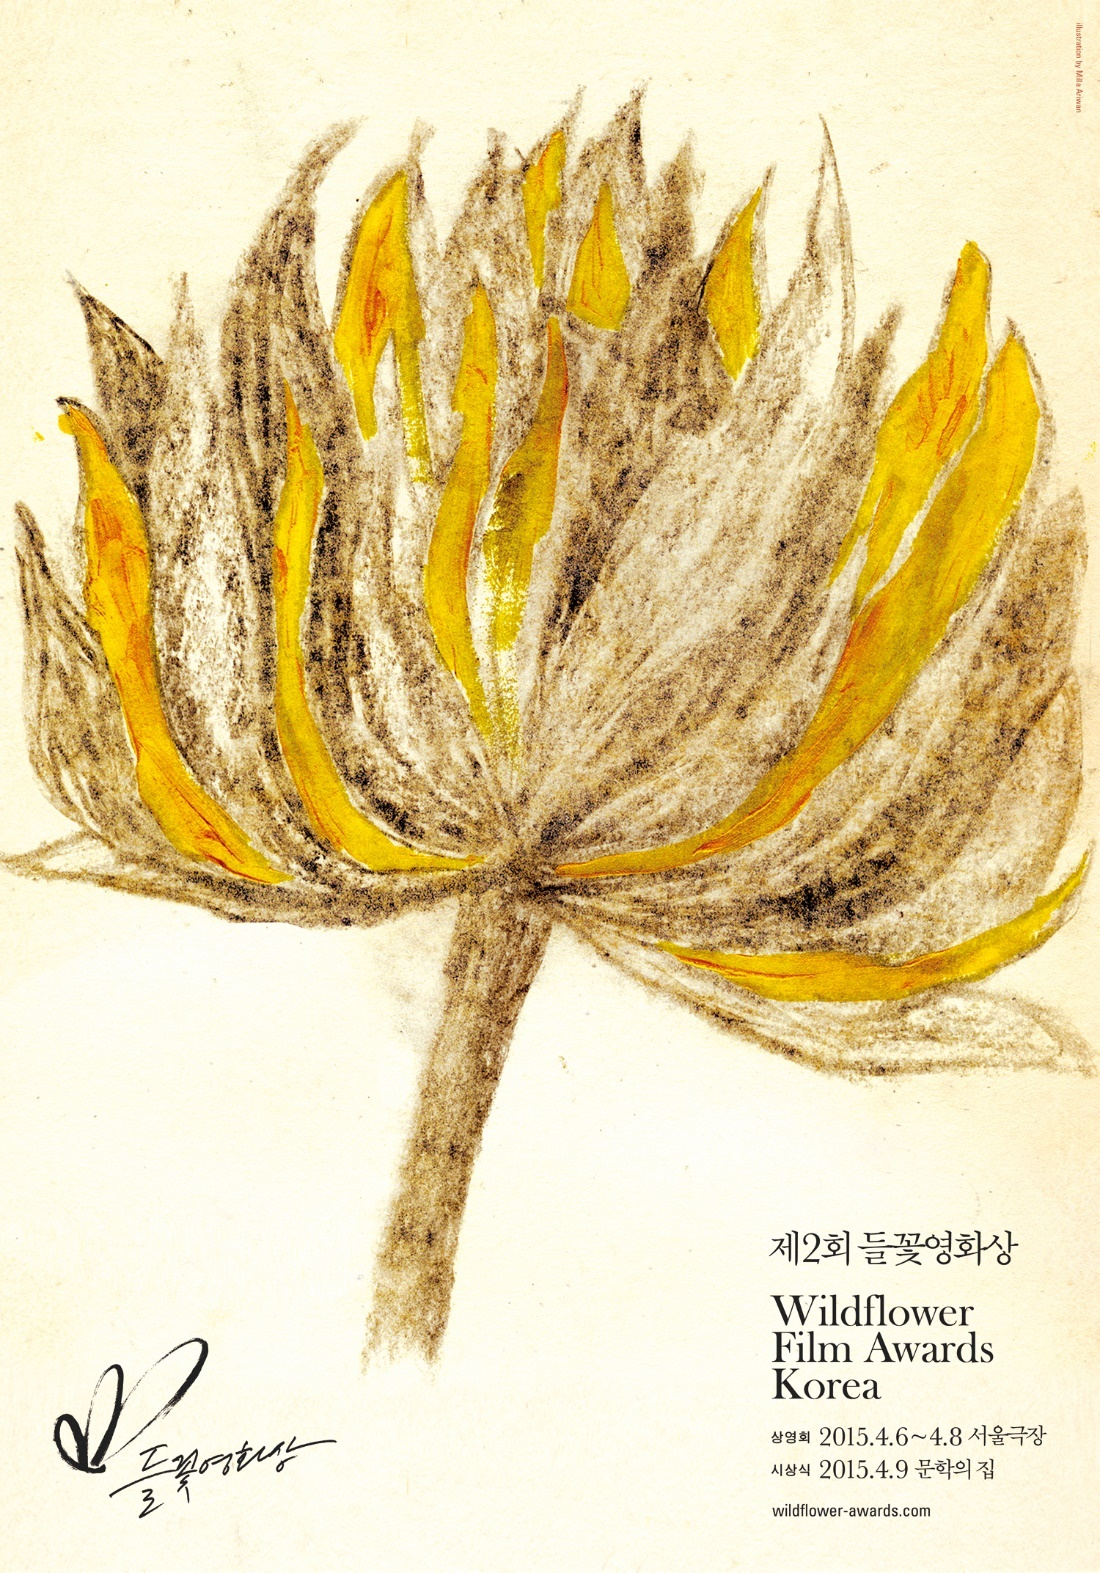 Figure 6: Poster for the 2015 Wildflower Film Awards Korea